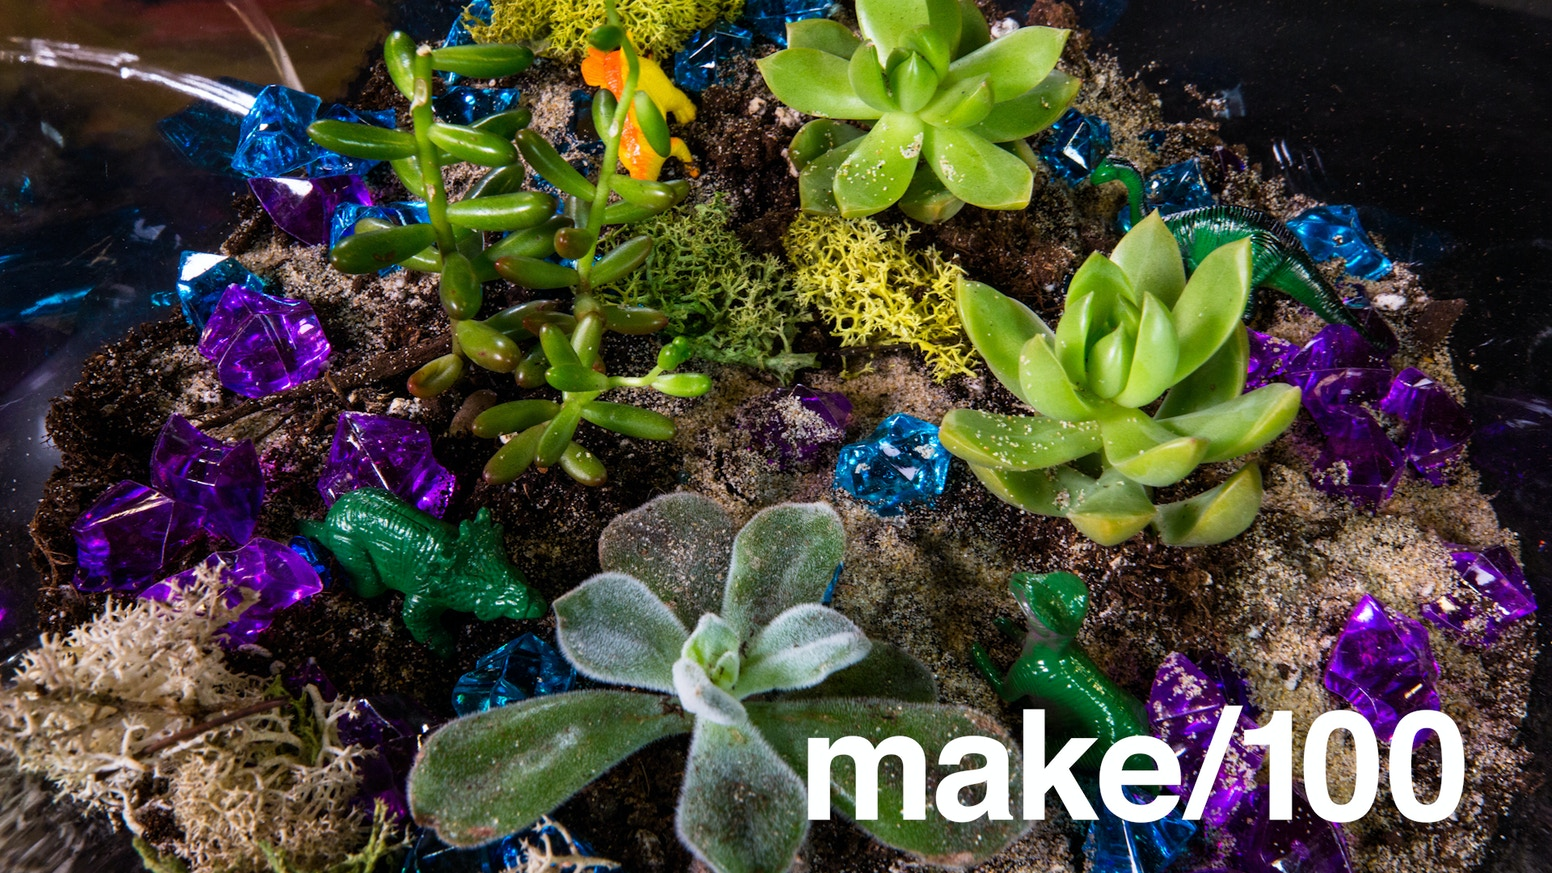 Make 100 diy terrarium kits with area 51 roswell sand by mike do it yourself terrarium kit with 4 succulents nothing to wait for to grow solutioingenieria Image collections